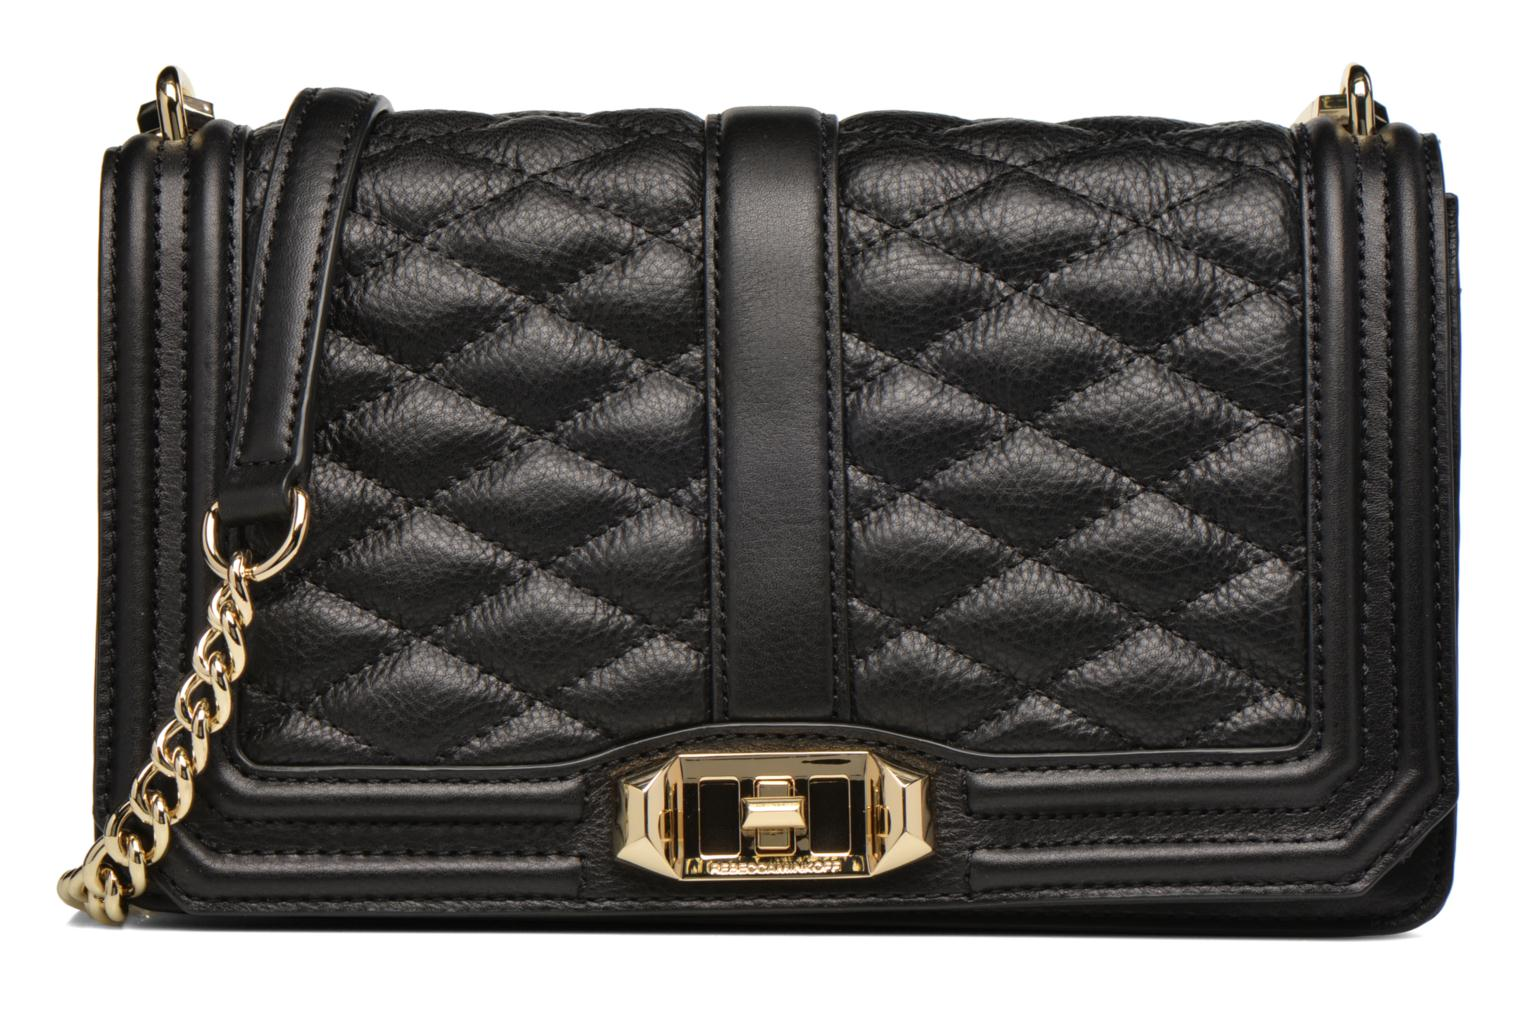 Blackgold Rebecca Rebecca Minkoff Blackgold Love Crossbody Rebecca Minkoff Blackgold Love Minkoff Crossbody Love Crossbody npAzXB8